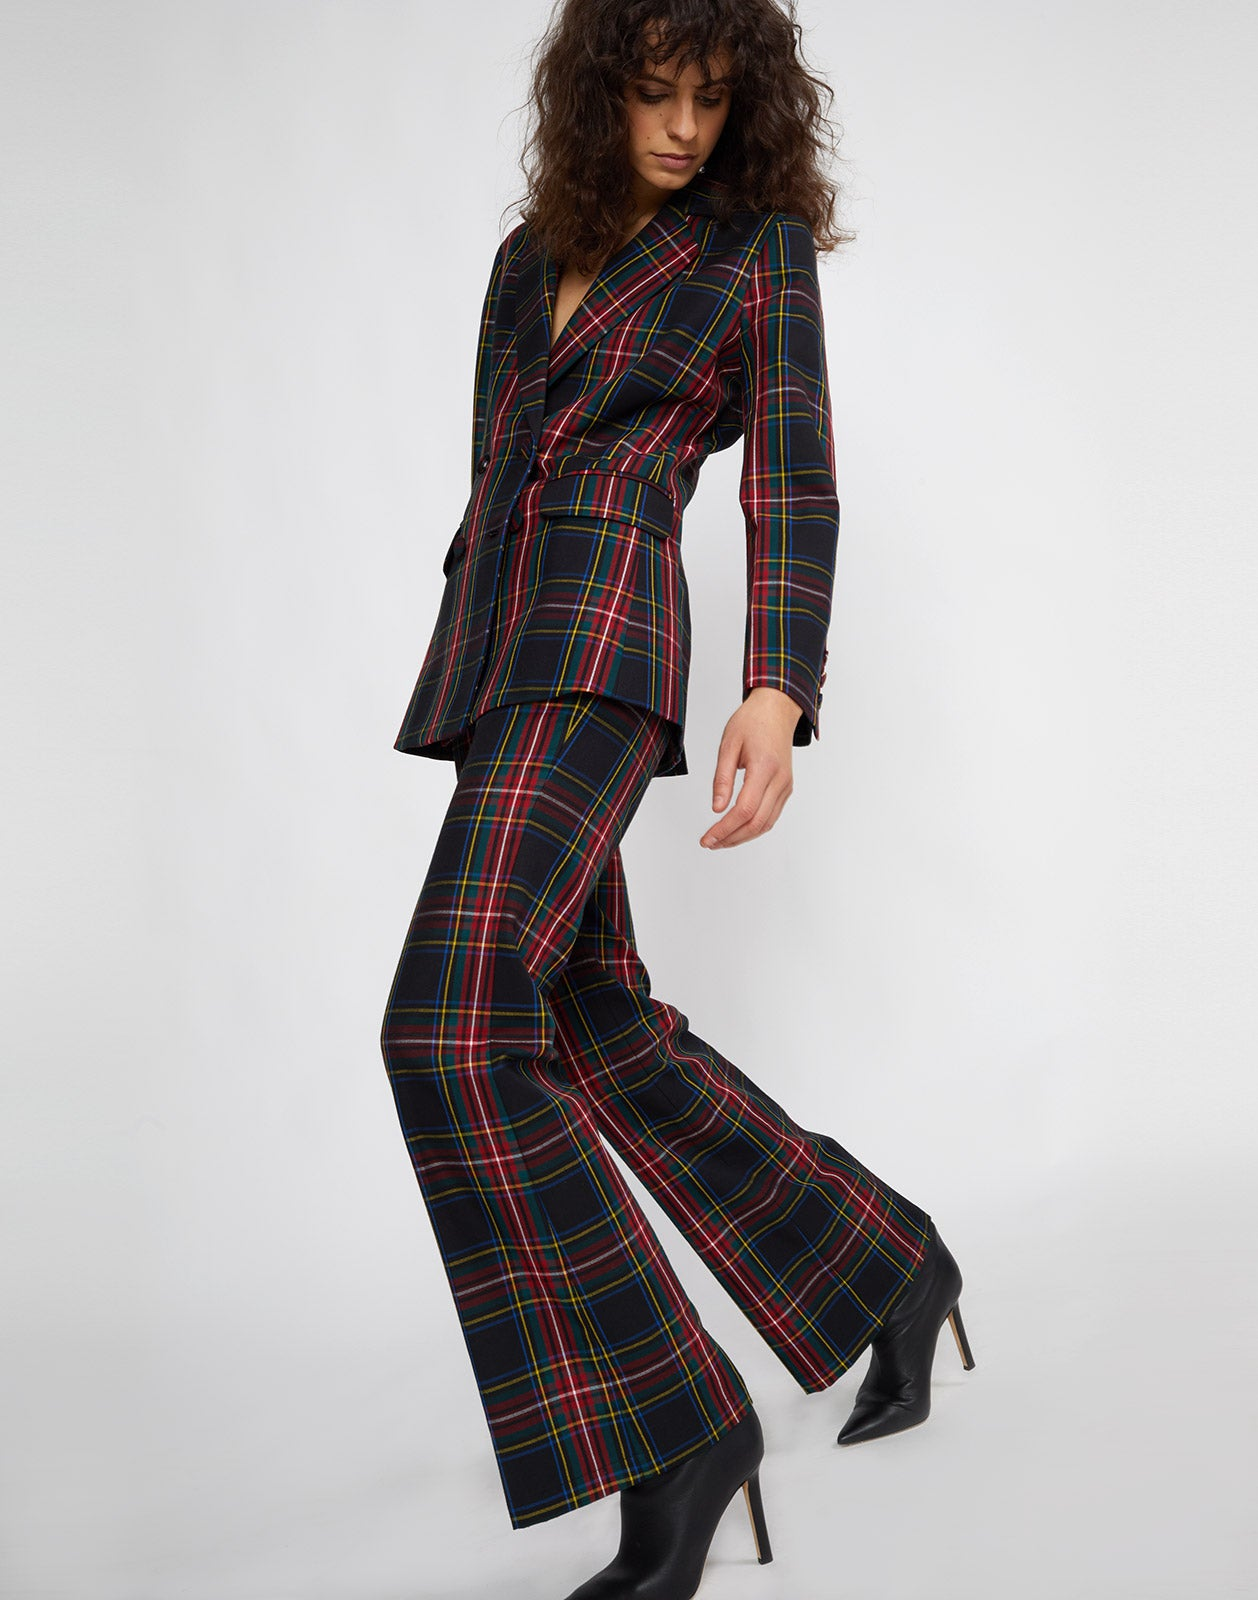 Full side view of the Ridley Plaid Wool Blazer and the Astor Plaid Wool Pant.